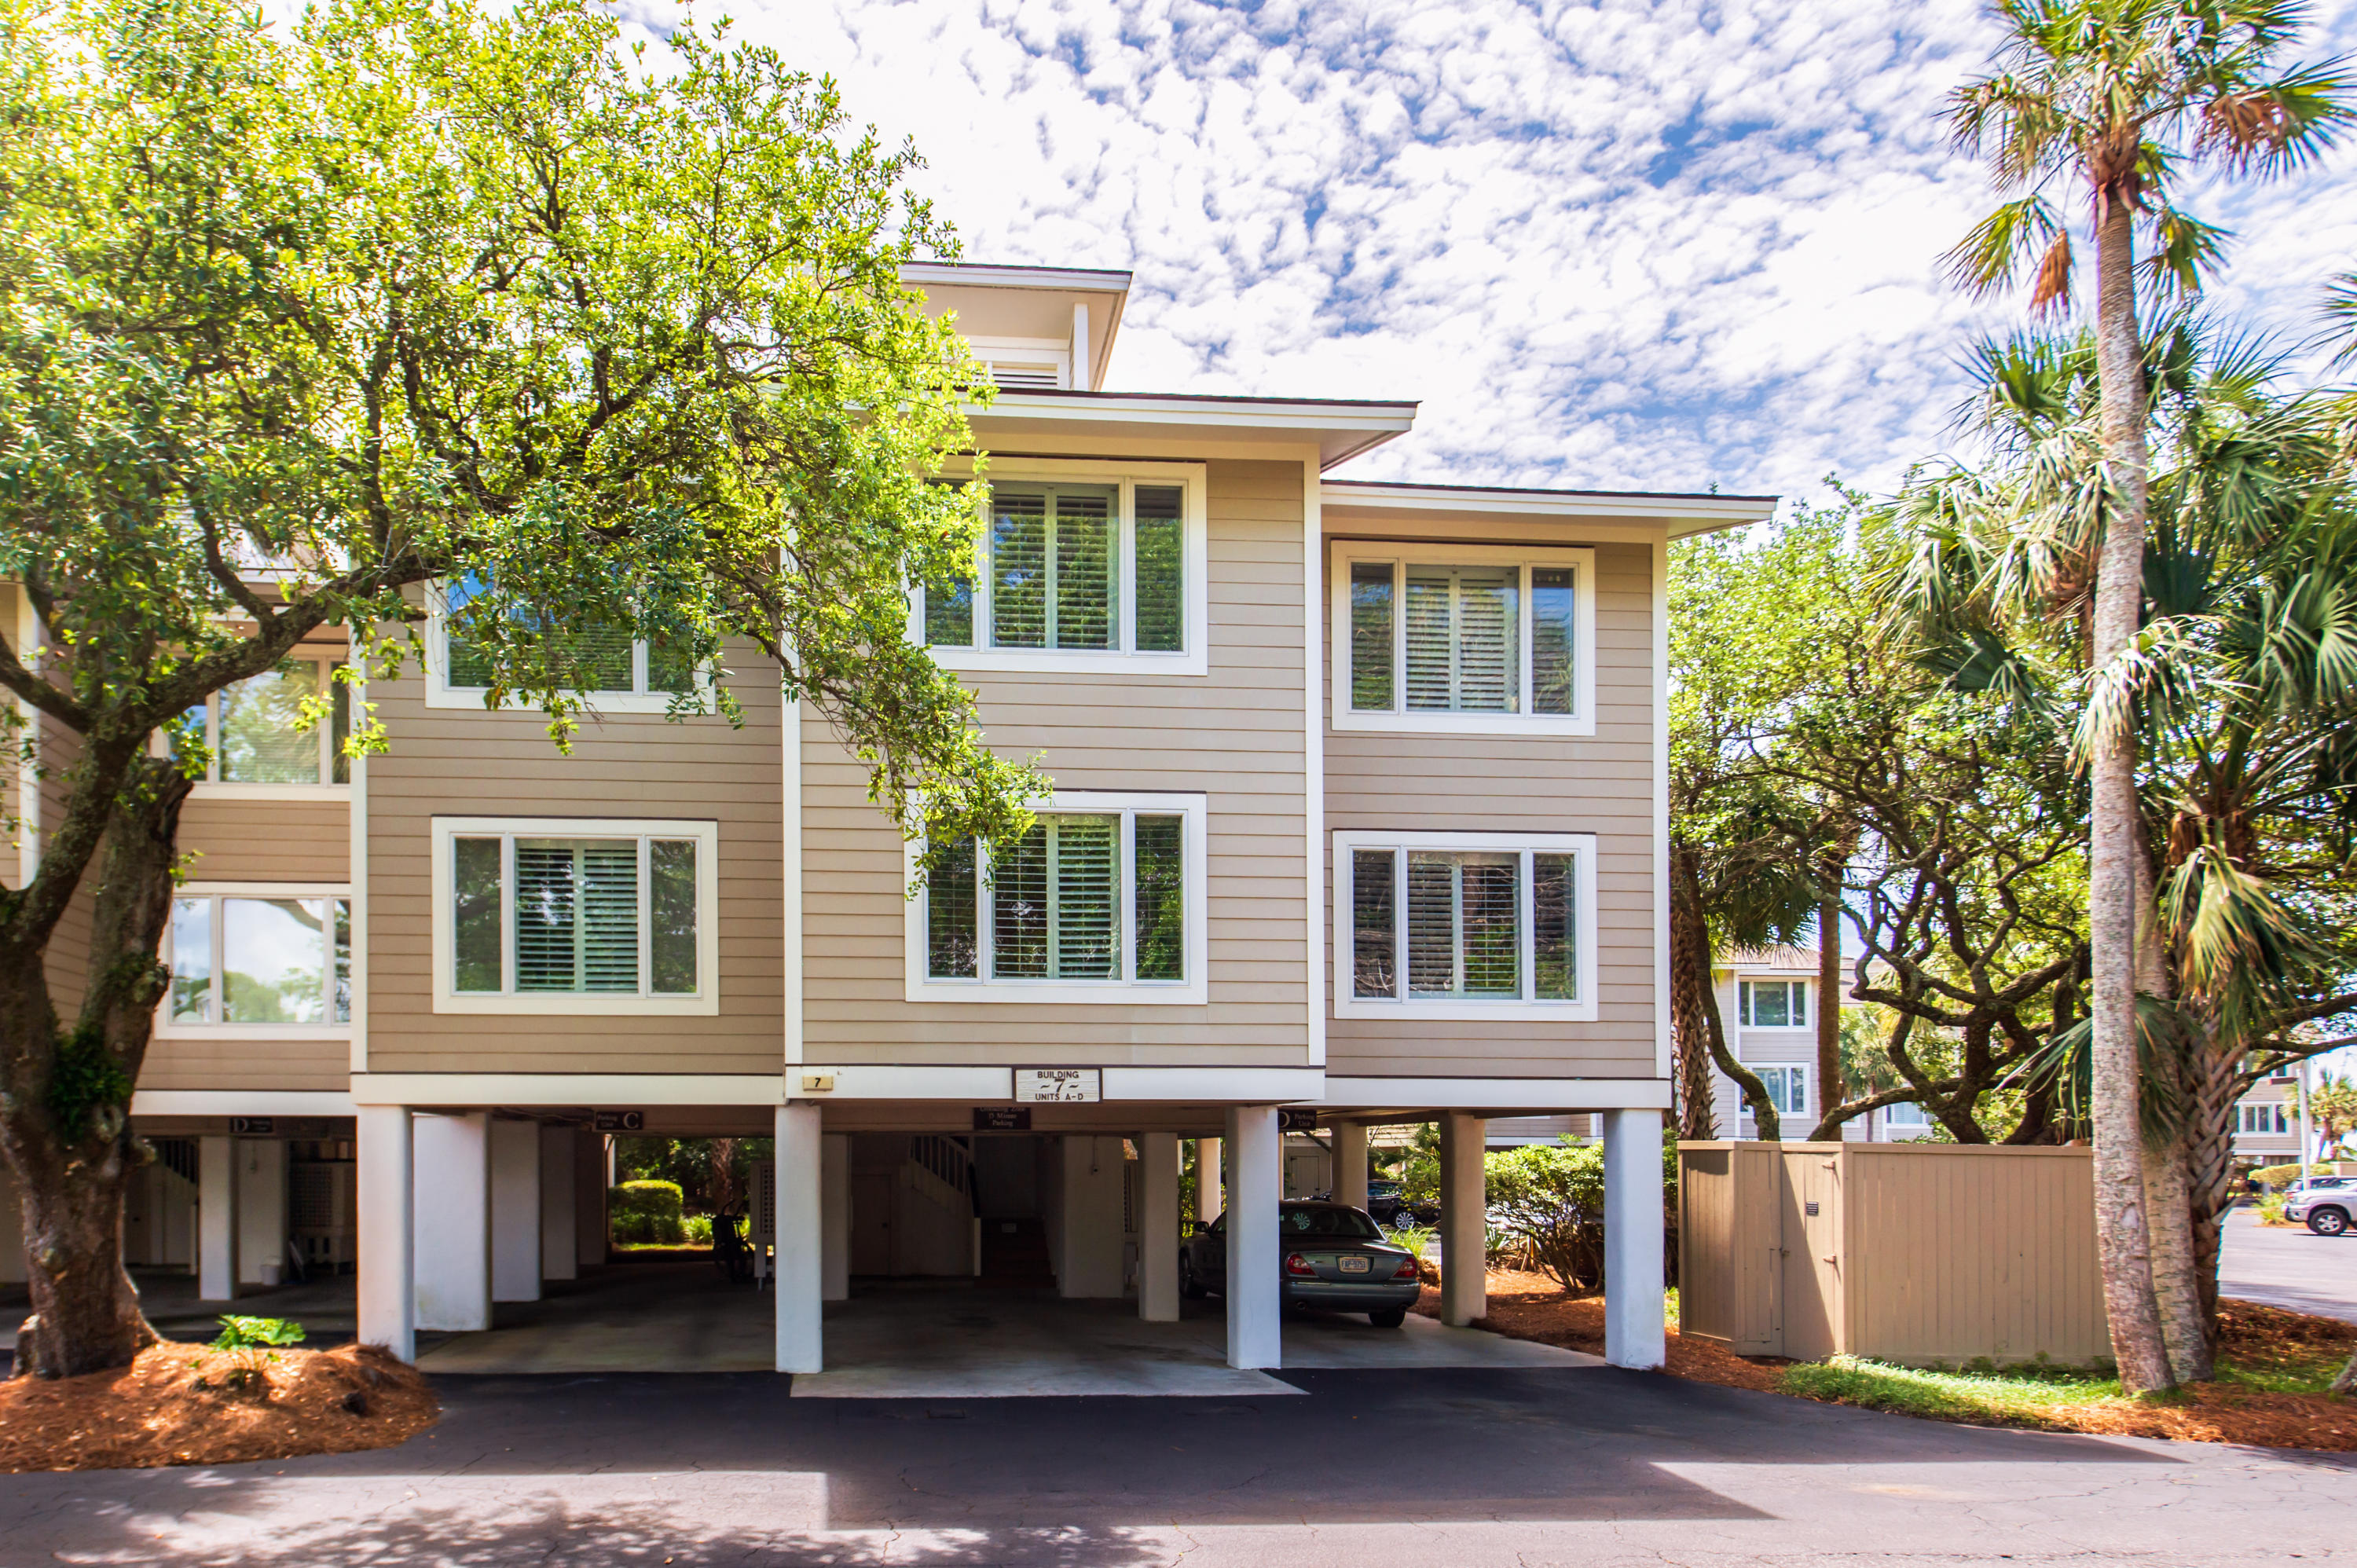 Wild Dunes Homes For Sale - 7 Seagrove, Isle of Palms, SC - 27